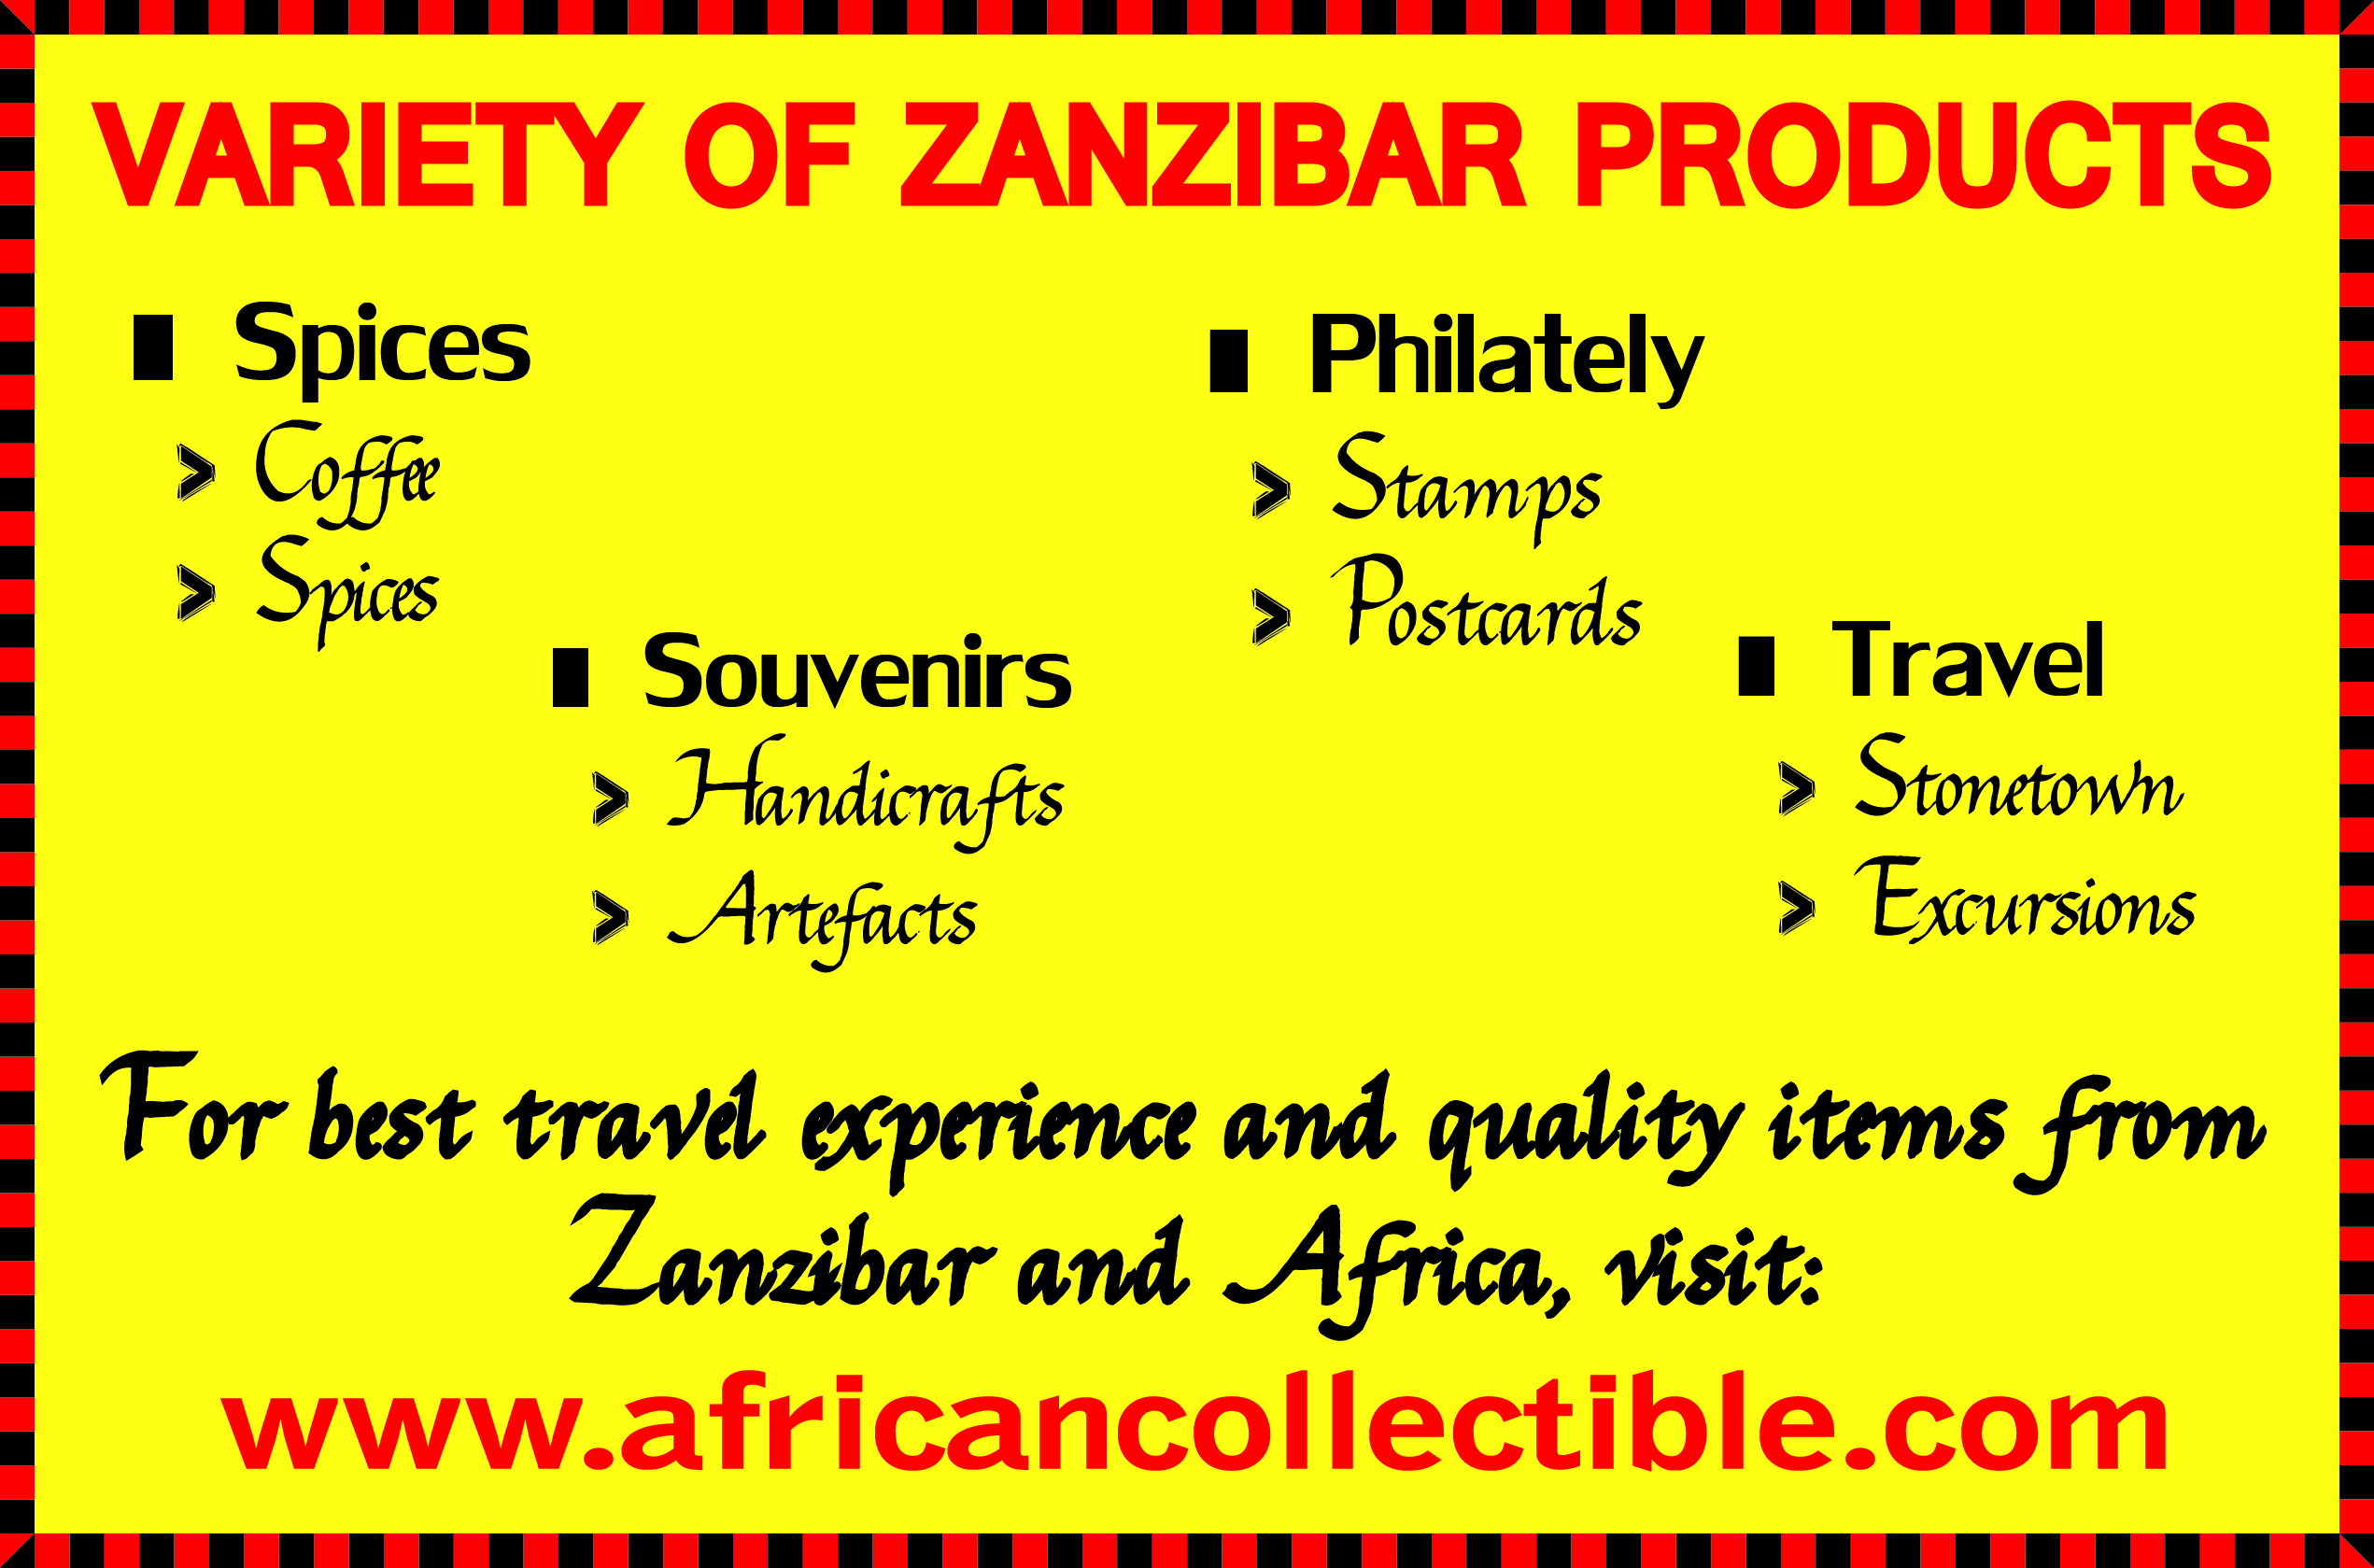 http://www.africancollectible.com